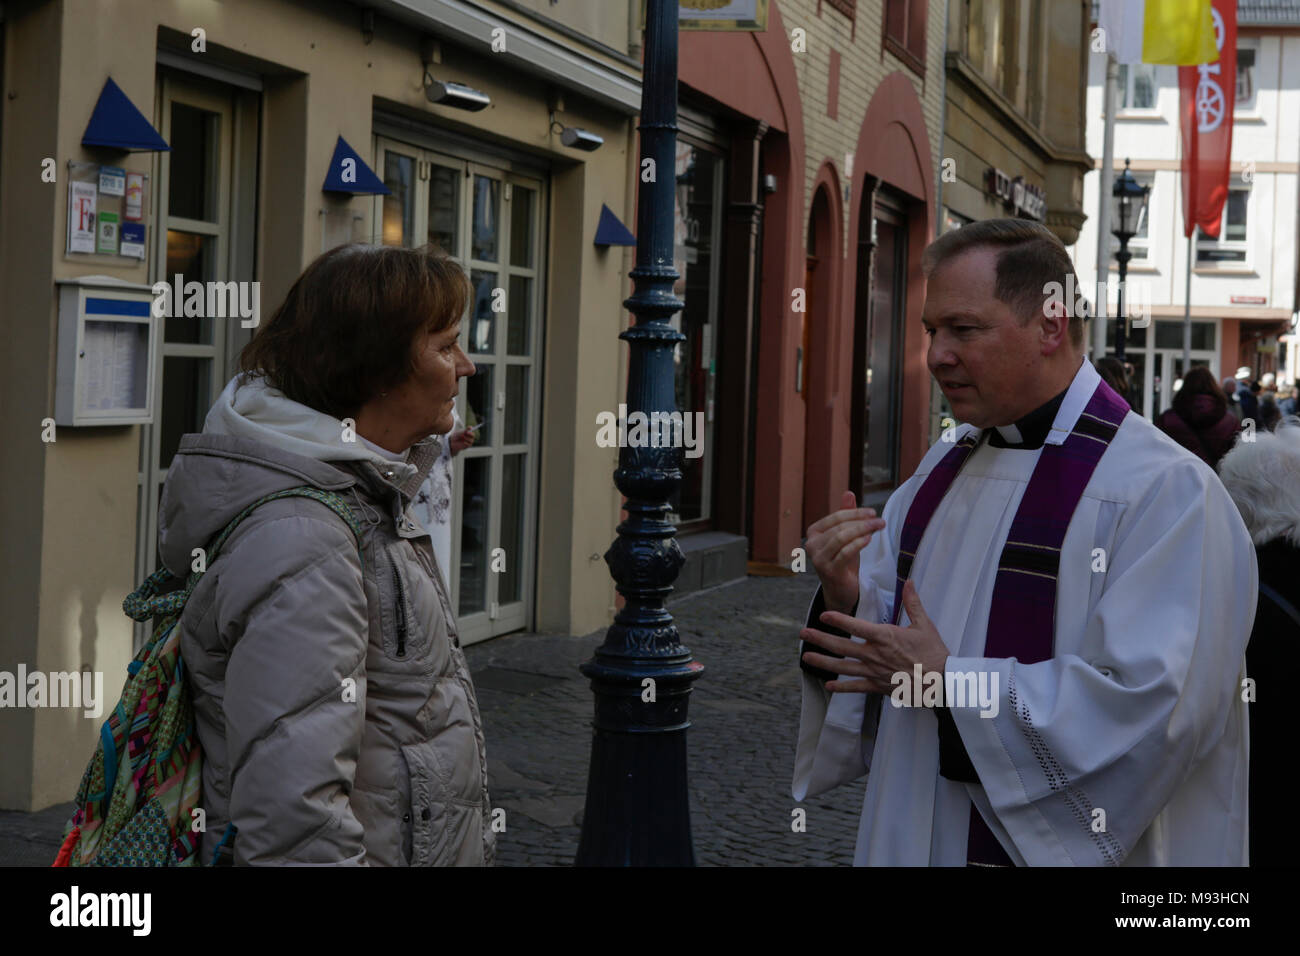 A priest talks to a women who stands along the route of the funeral procession for Cardinal Lehmann. The funeral of Cardinal Karl Lehmann was held in the Mainz Cathedral, following a funeral procession from the Augustiner church were he was lying in repose. German President Frank-Walter Steinmeier attended the funeral as representative of the German state. Cardinal Karl Lehmann was the bishop of the Roman Catholic Diocese of Mainz for 33 years until his retirement in 2016. He was also the chairman of the Episcopal Conference of Germany for 21 years until he stepped down from this position in 2 - Stock Image